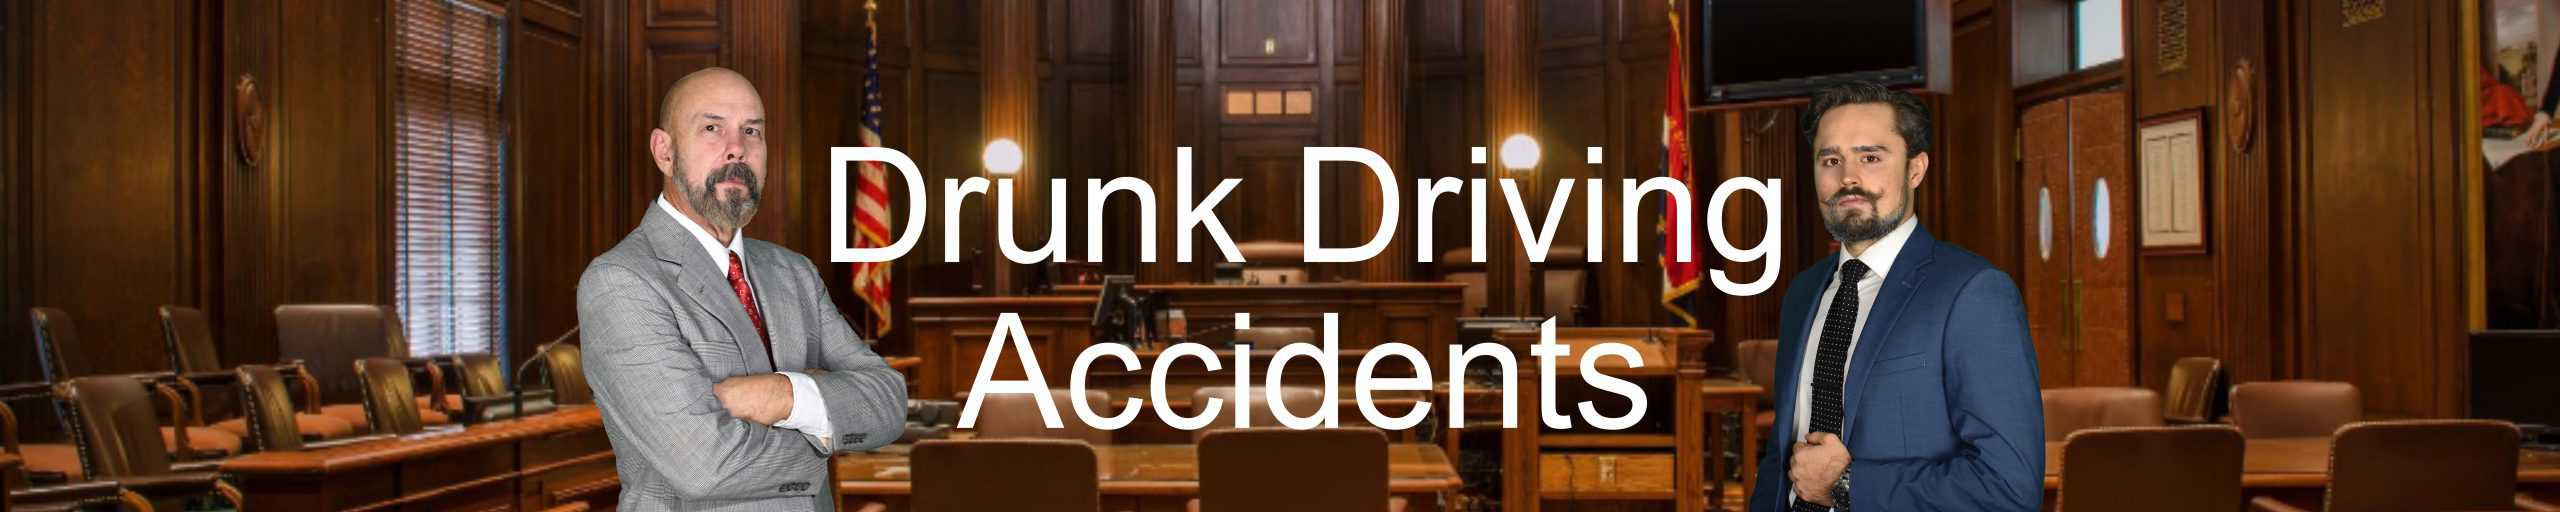 Drunk-Driving-Accidents-Personal-Injury-Attorney-Lawyer-Hurt-Broken-Rear-End-Money-Settlement-Hospital-ER-Damage-Insurance-Company-DUI-Alcohol-Bar